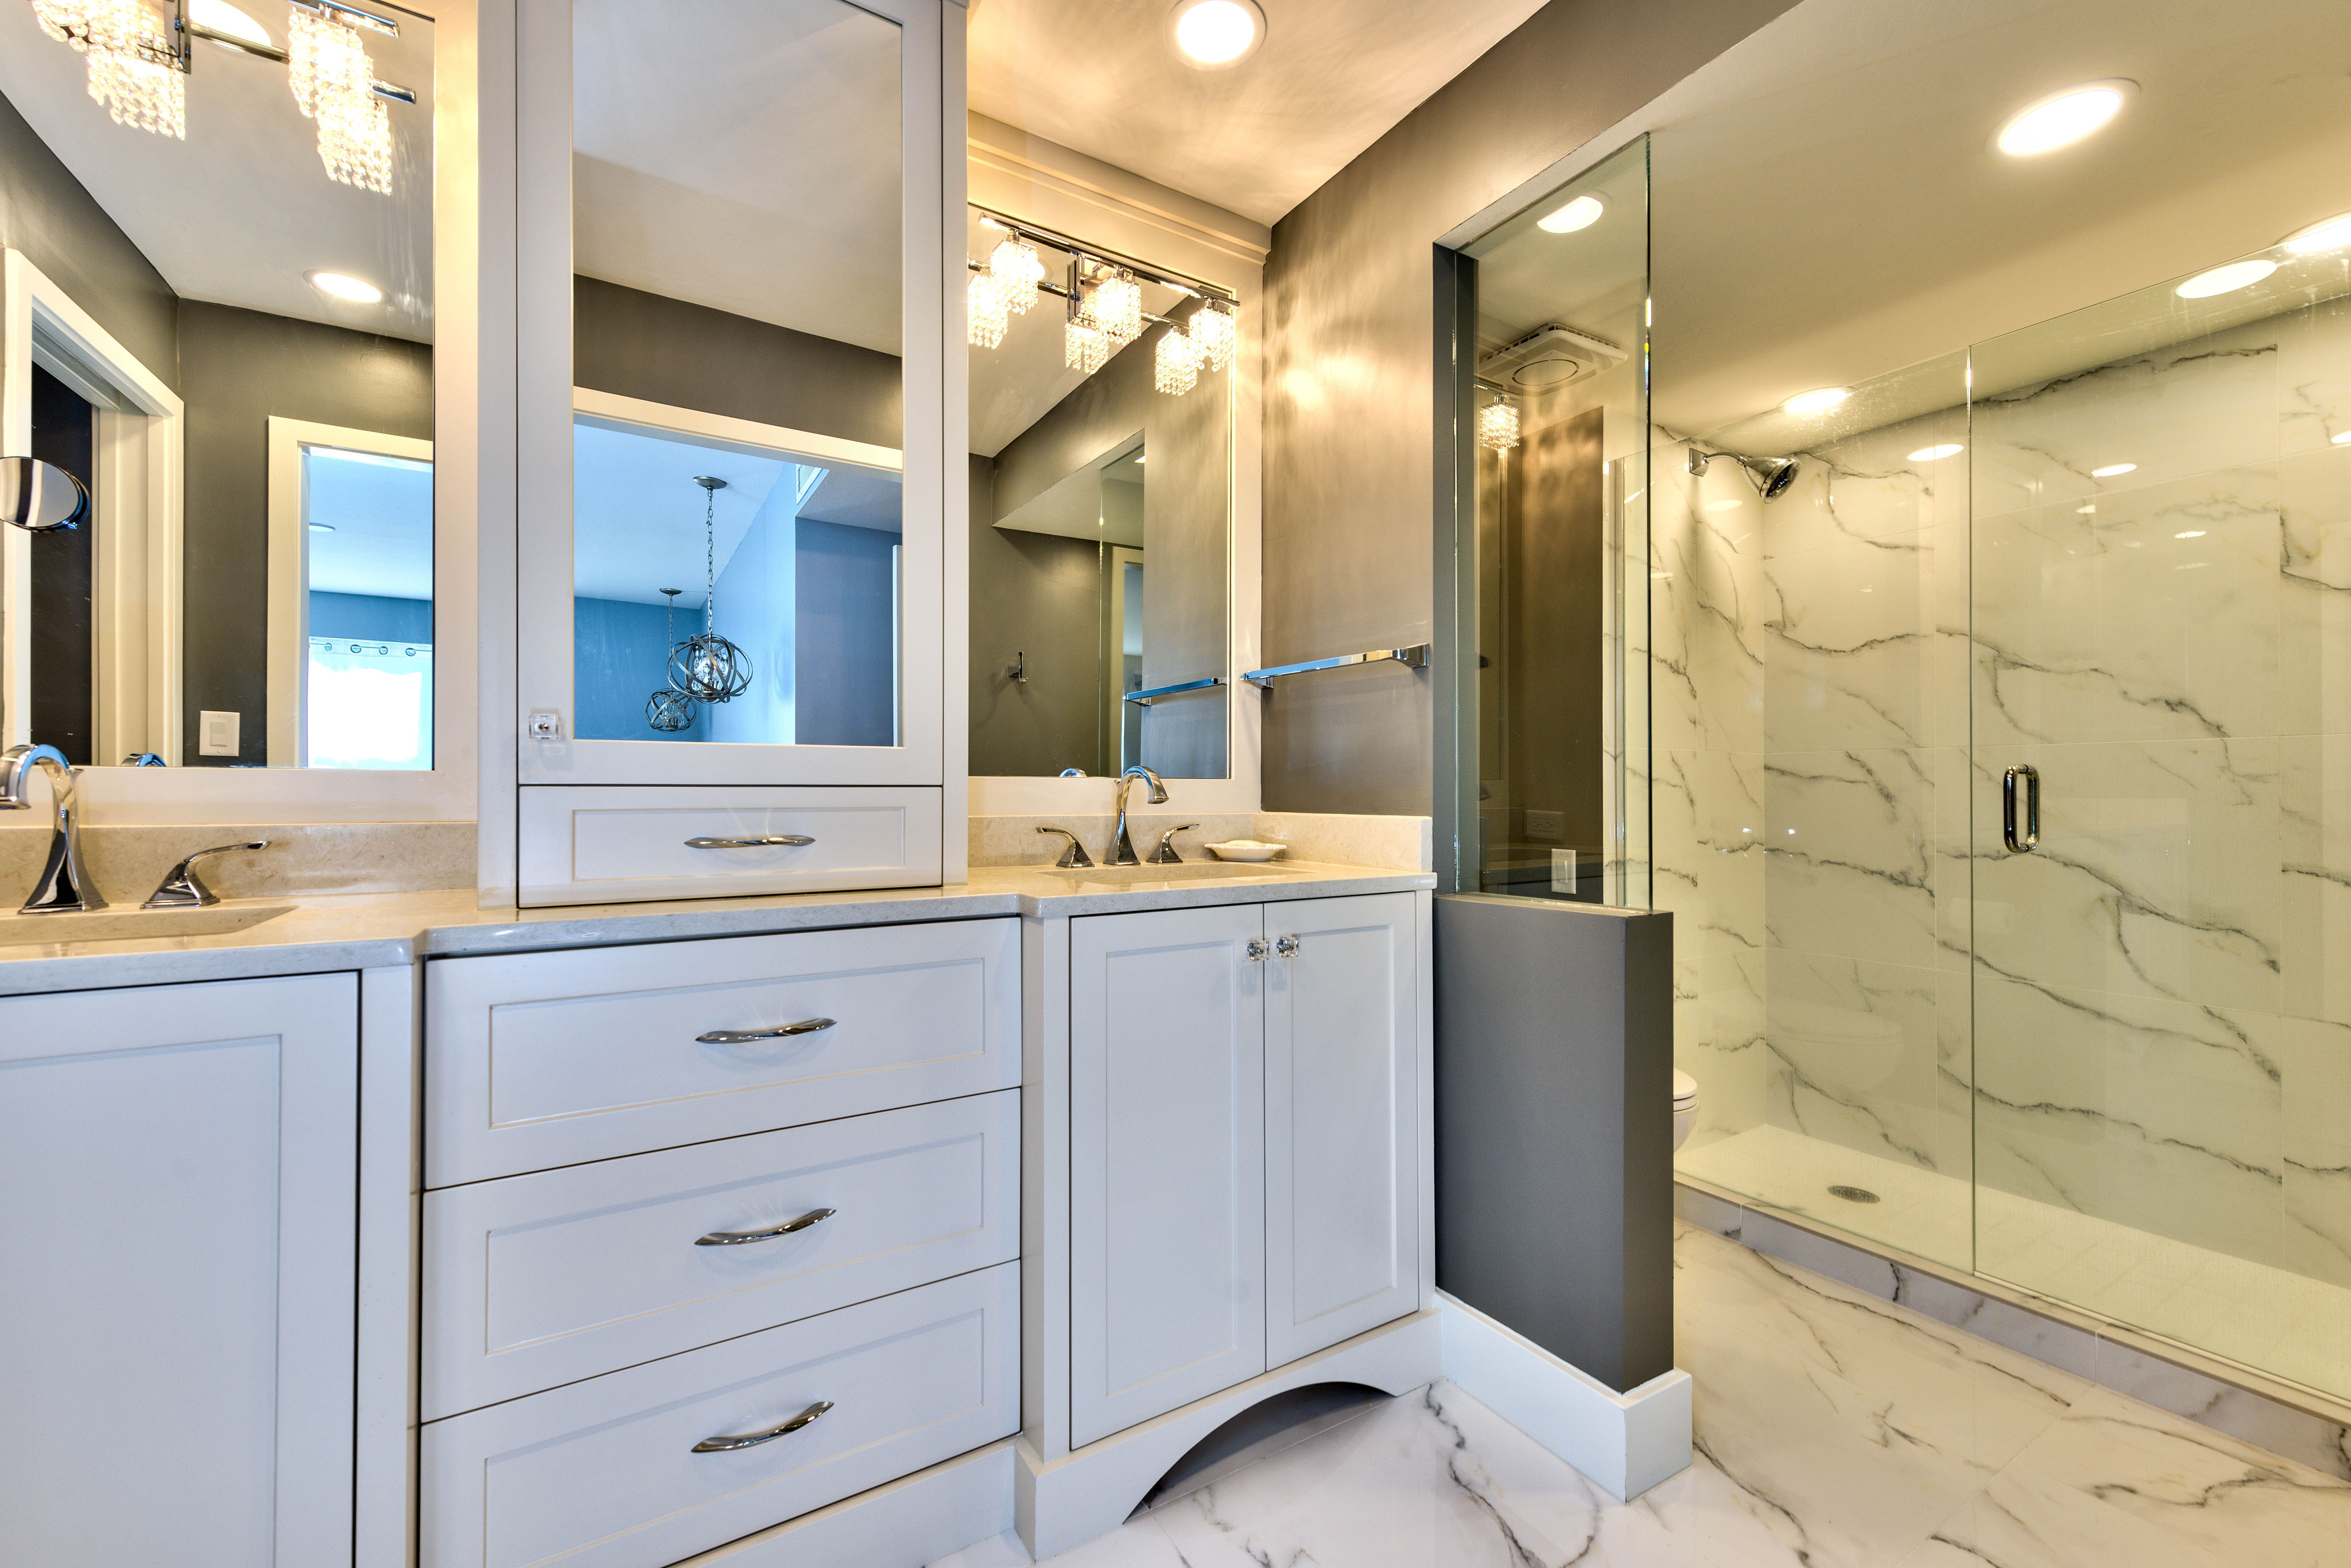 White And Gray Luxury Bathroom Transitional Marbleshower Http Www Palmbrothersremodeling Com Bathrooms Remodel Remodel Luxury Bathroom [ 4920 x 7376 Pixel ]